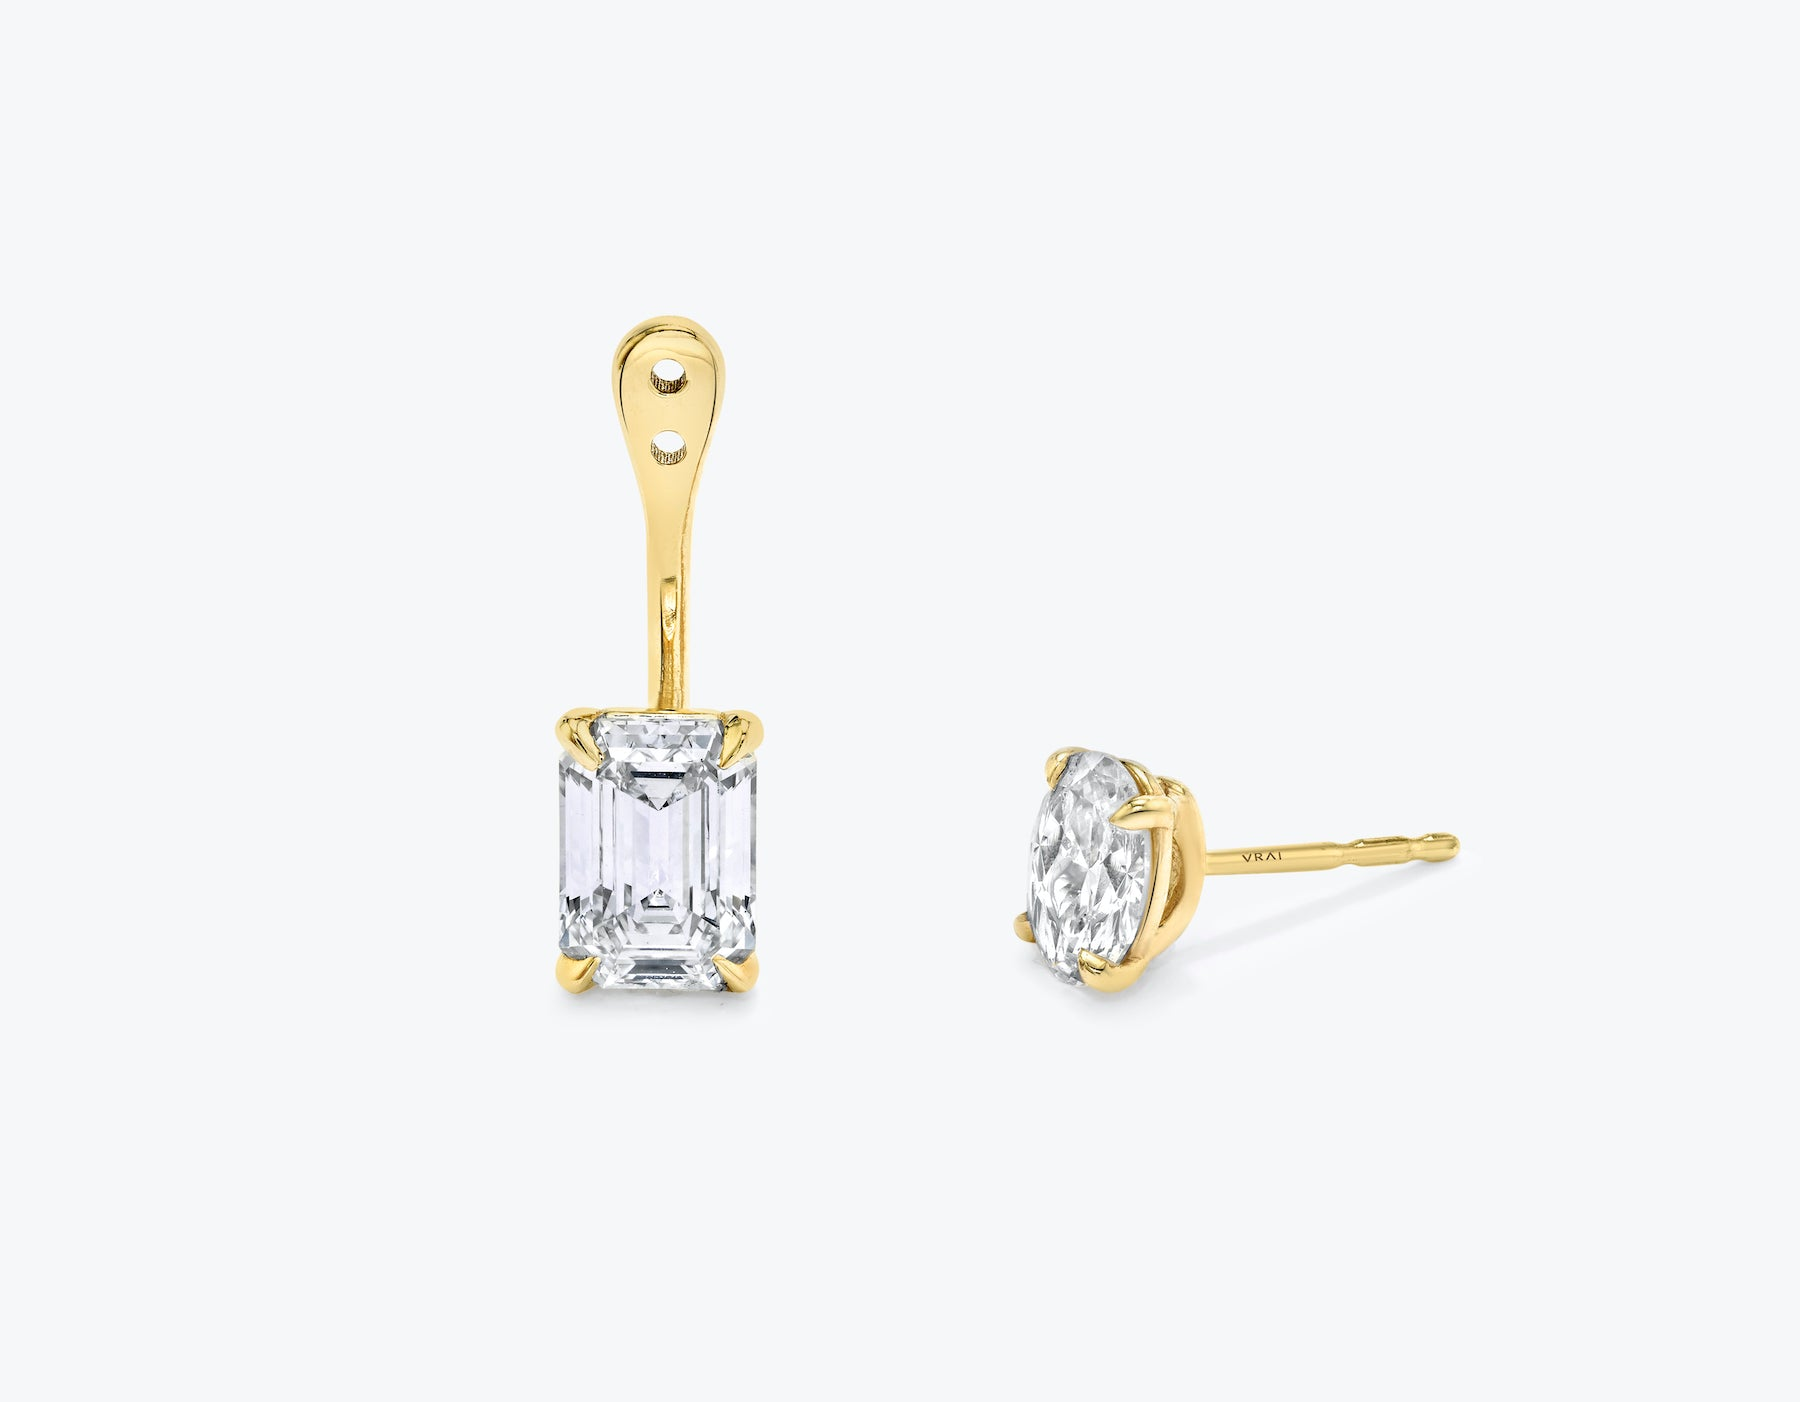 Vrai solitaire emerald diamond drop ear jackets made in 14k solid gold with sustainably created diamonds with round solitaire diamond stud, 14K Yellow Gold